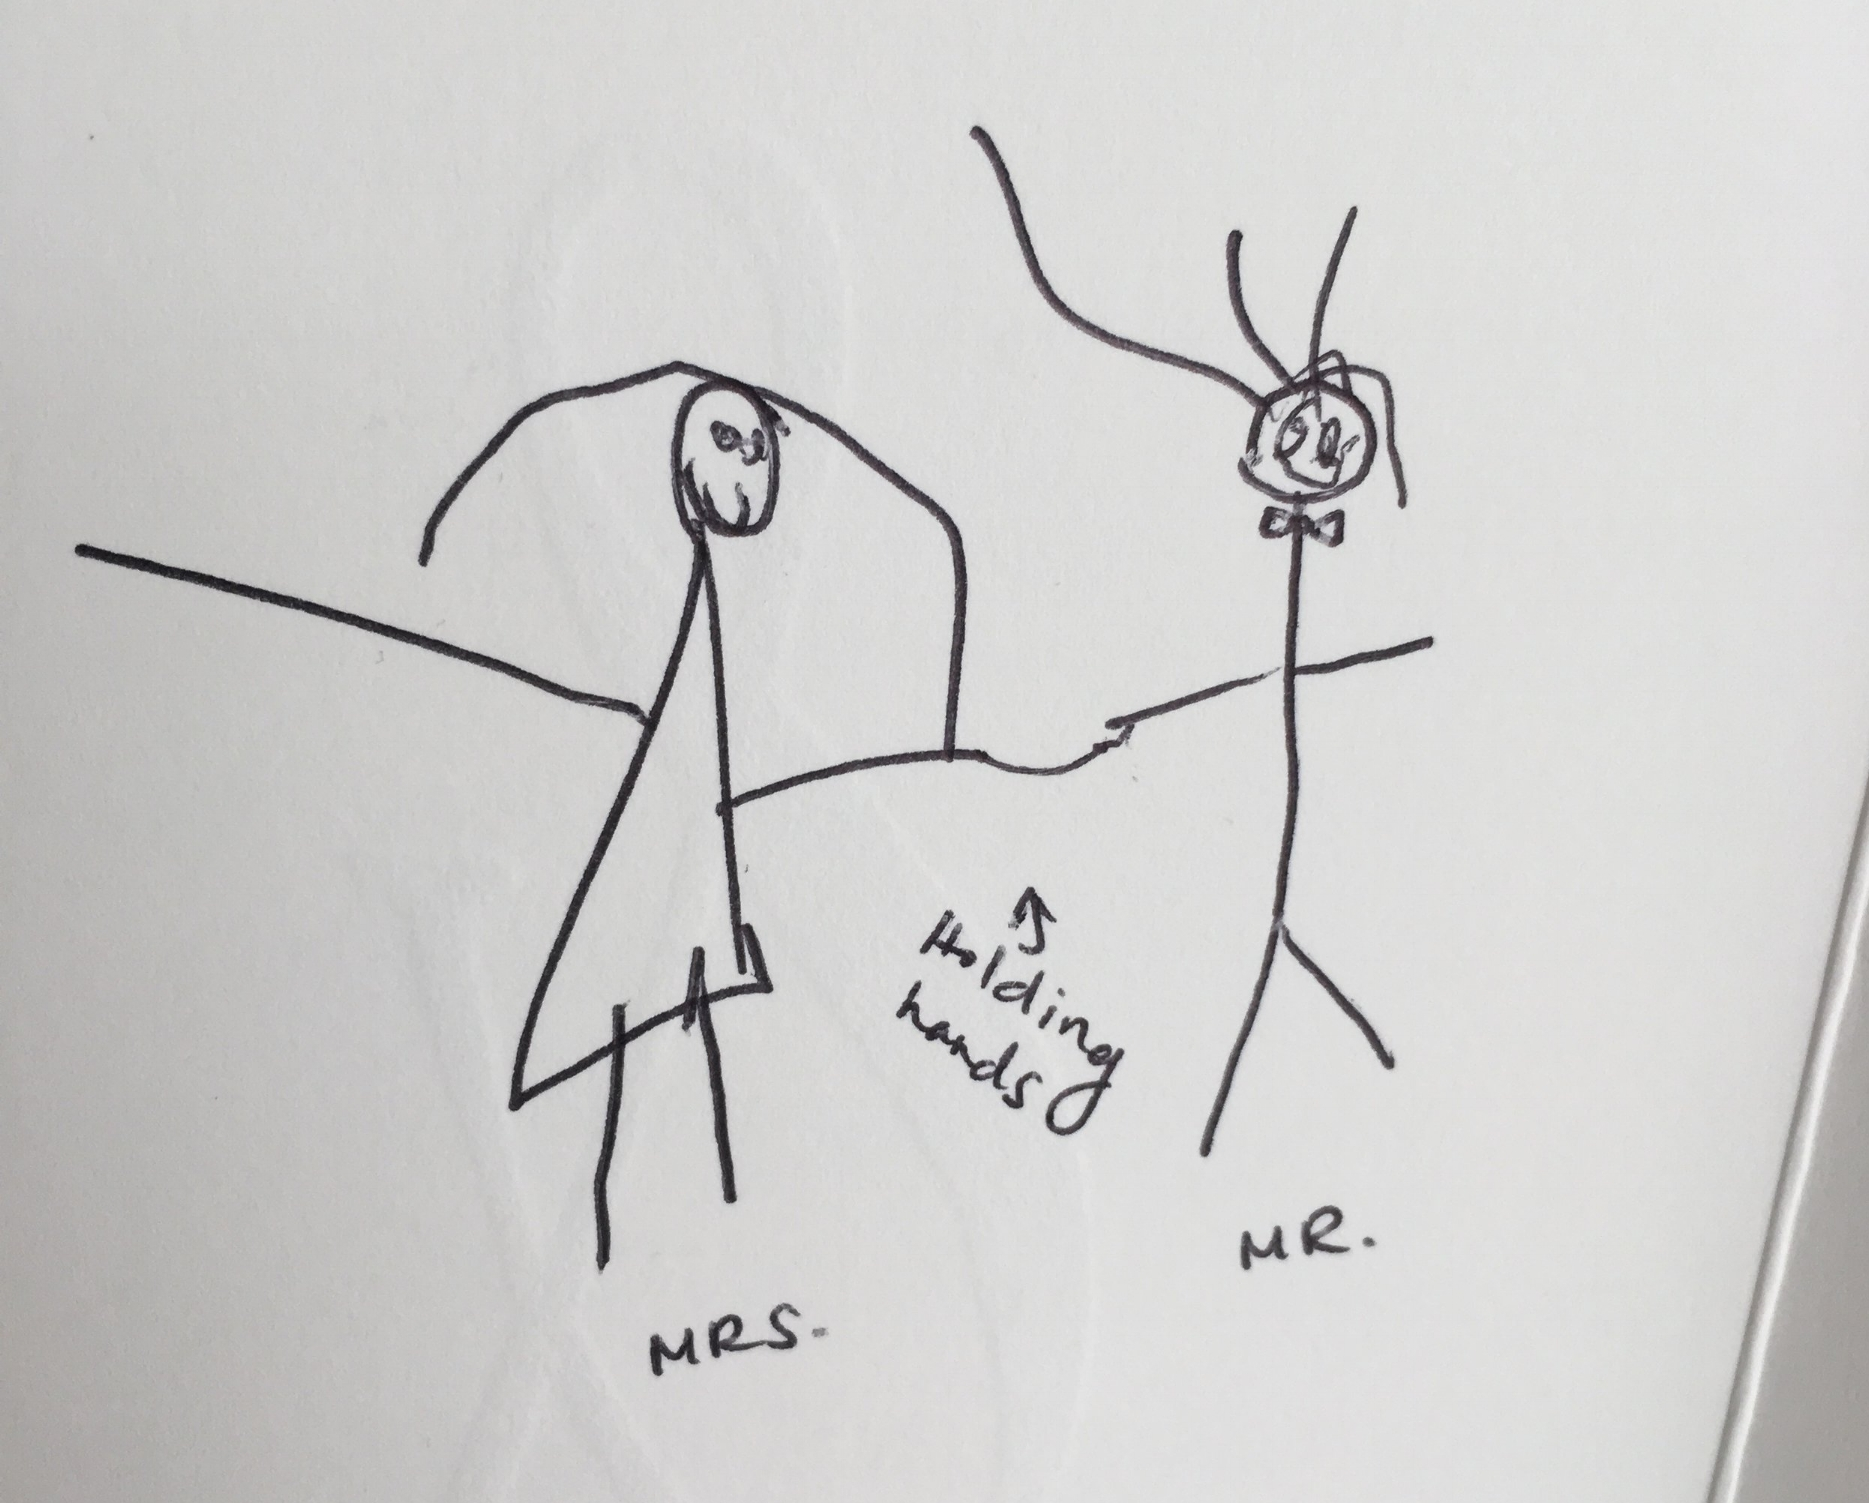 Olivia's art in the wedding card. She intentionally linked their hands.